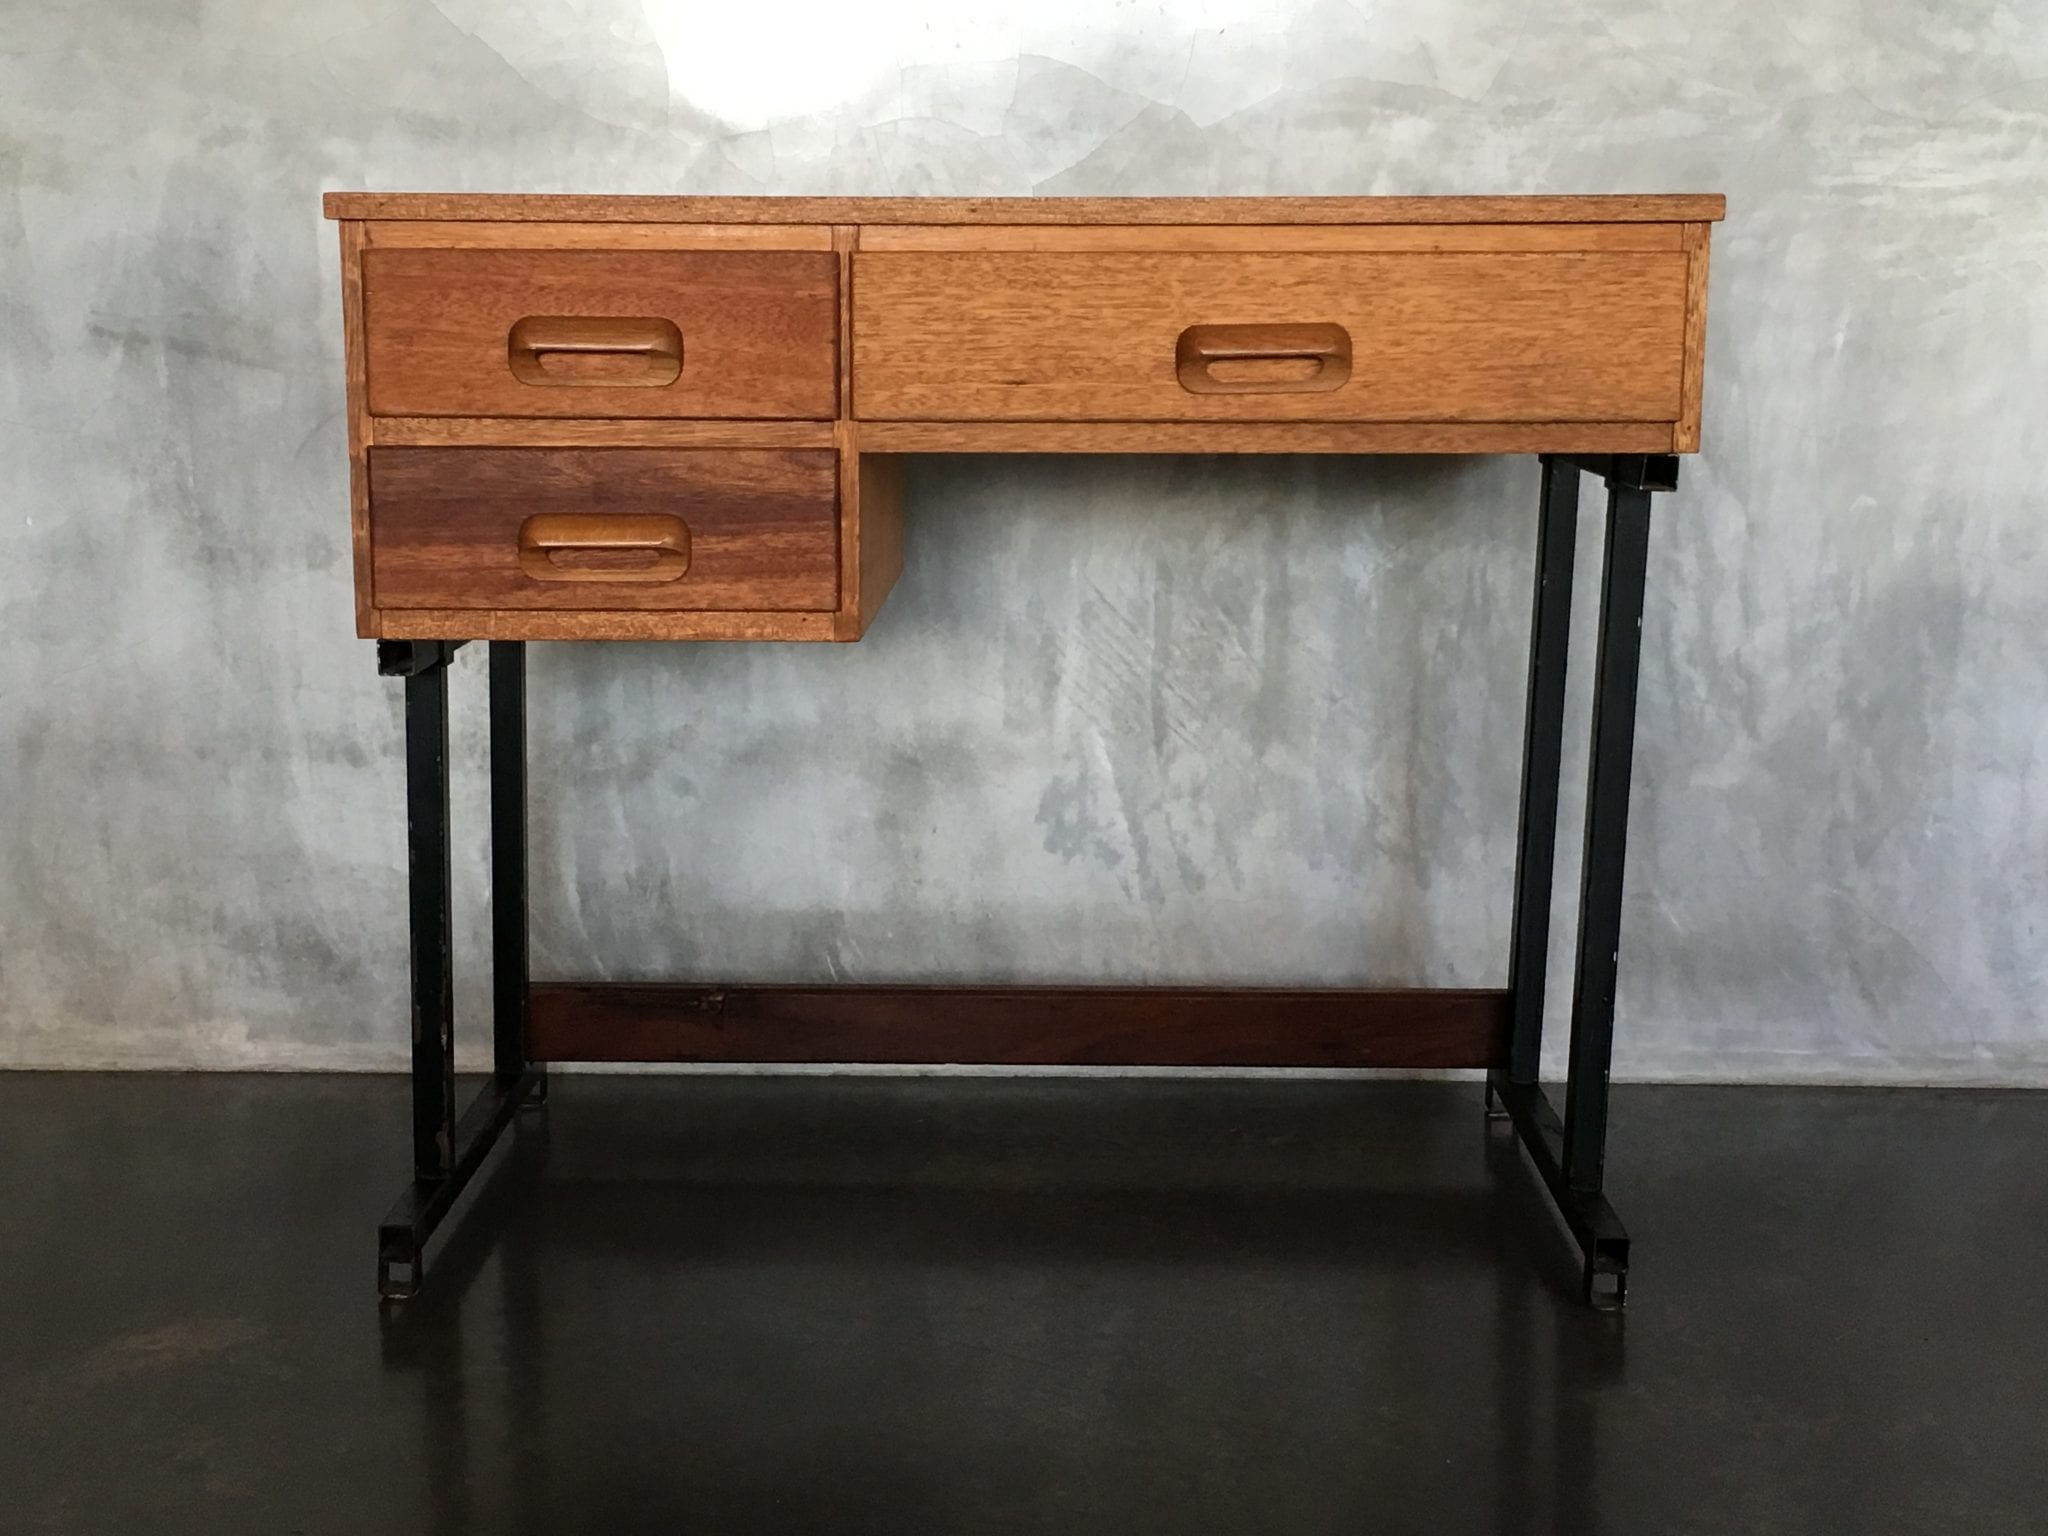 retro vintage midcentury industrial style desk 20th century vintage. Black Bedroom Furniture Sets. Home Design Ideas